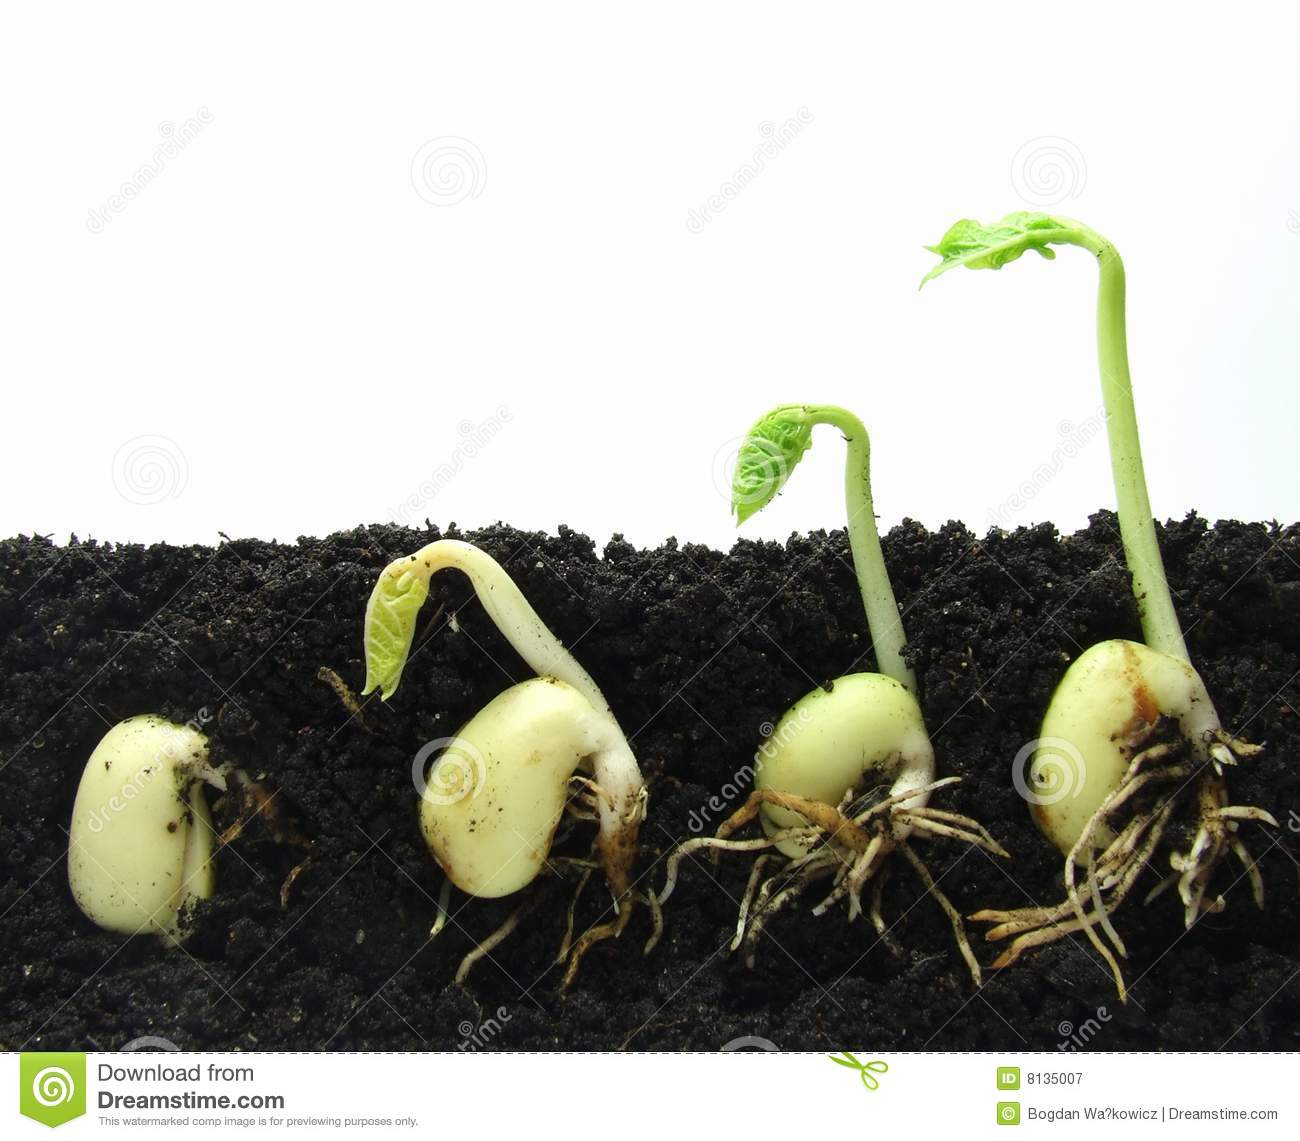 Germinating Plants Royalty Free Stock Photography - Image: 8135007